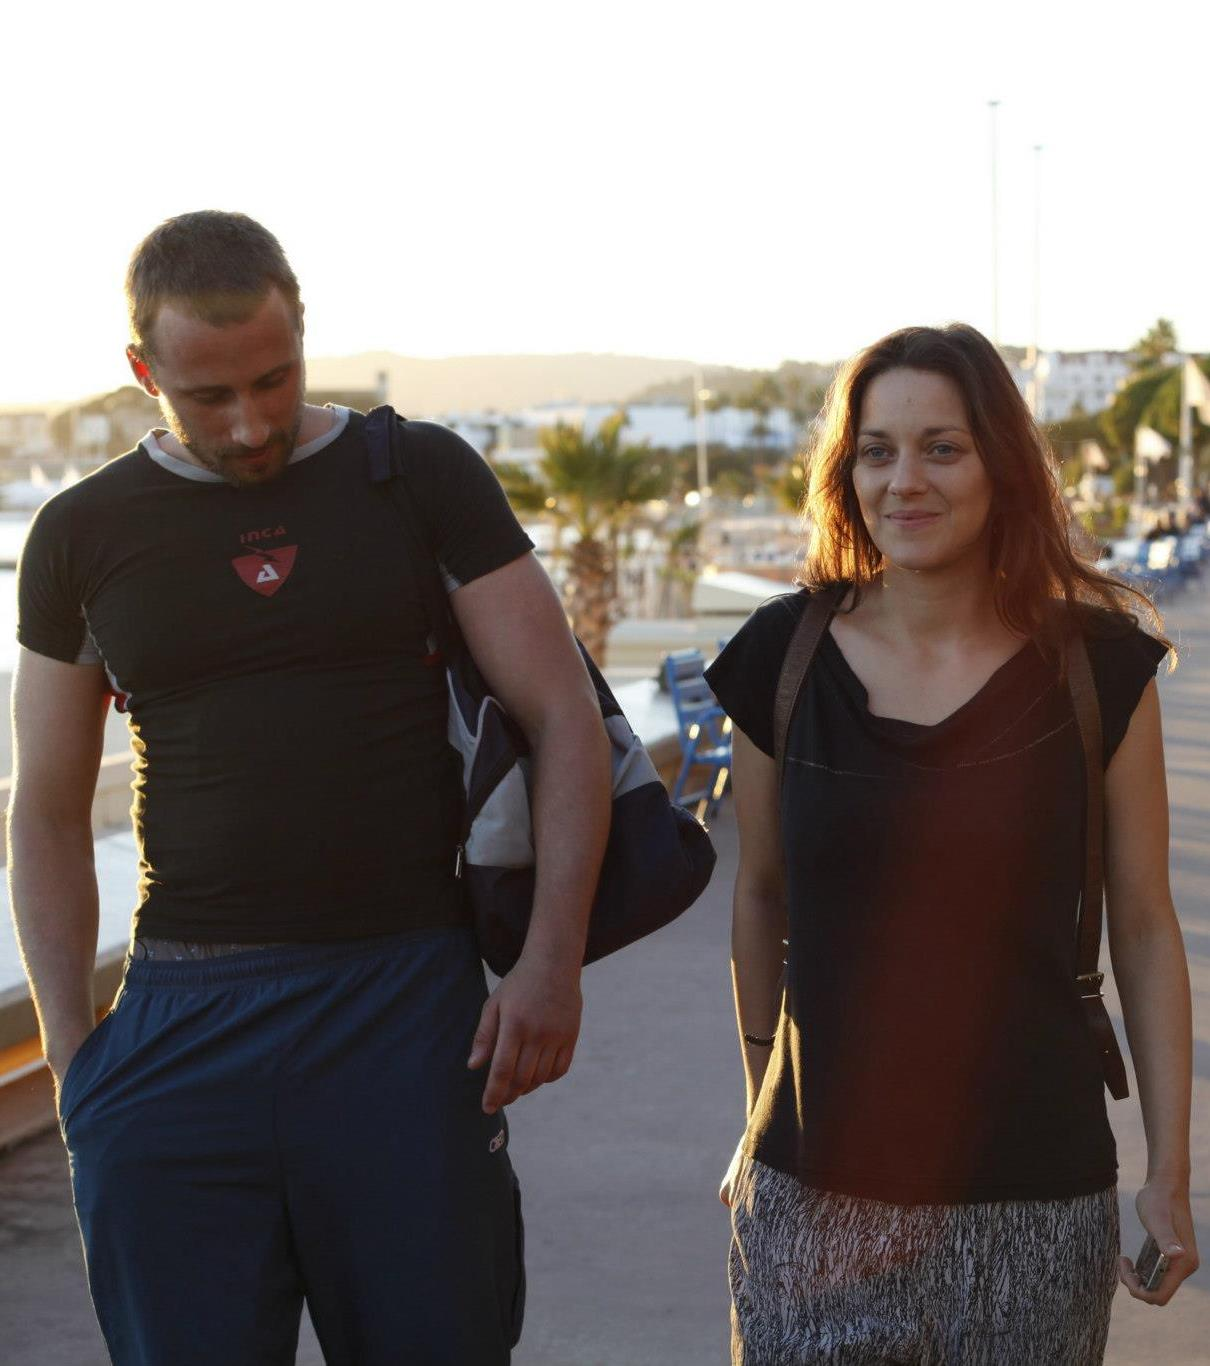 Matthias Schoenaerts and Martion Cotillard in Rust and Bone 2 25 Things You Didn't Know About The Dark Knight Rises